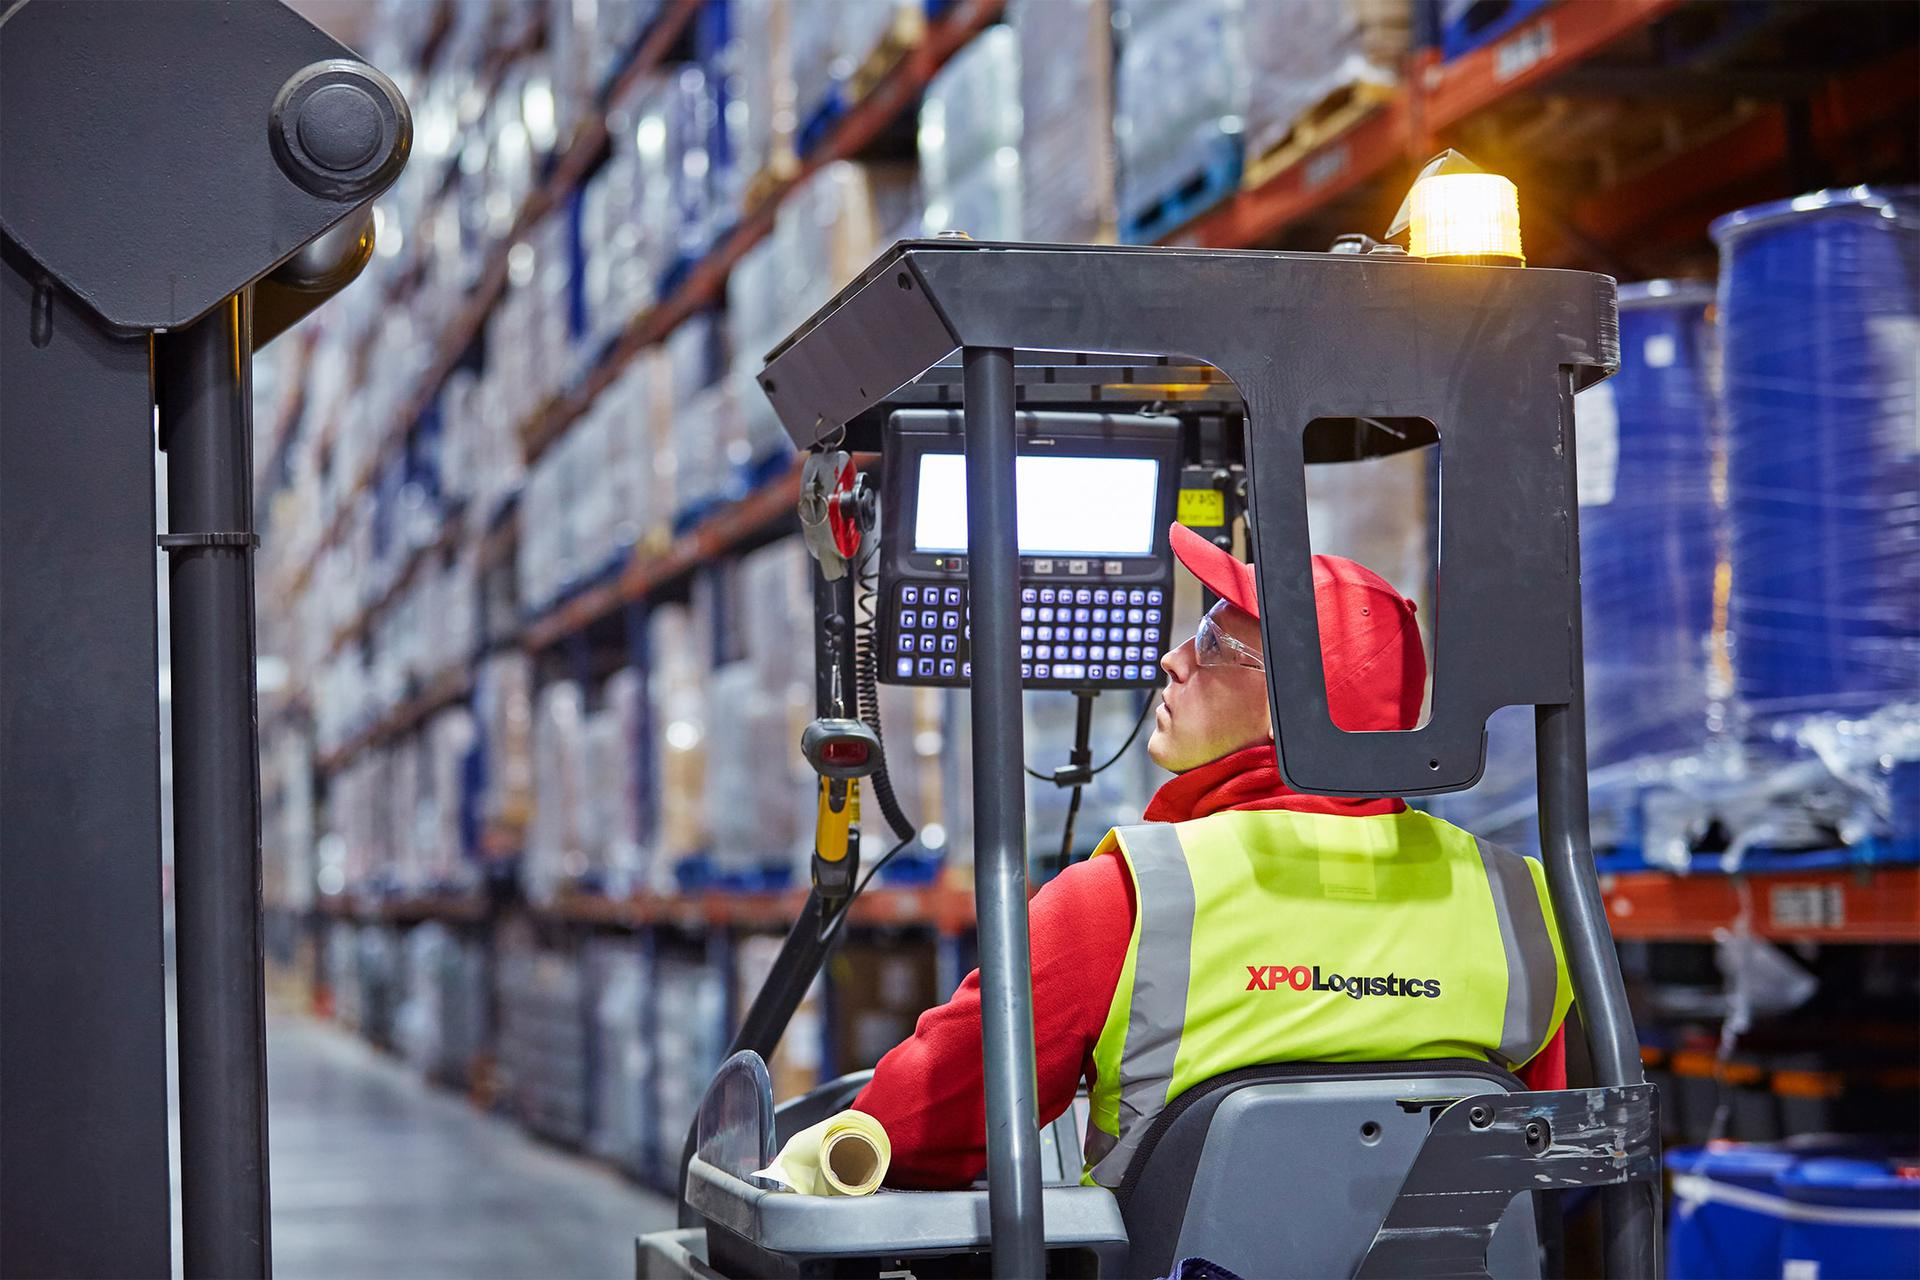 XPO employee driving forklift